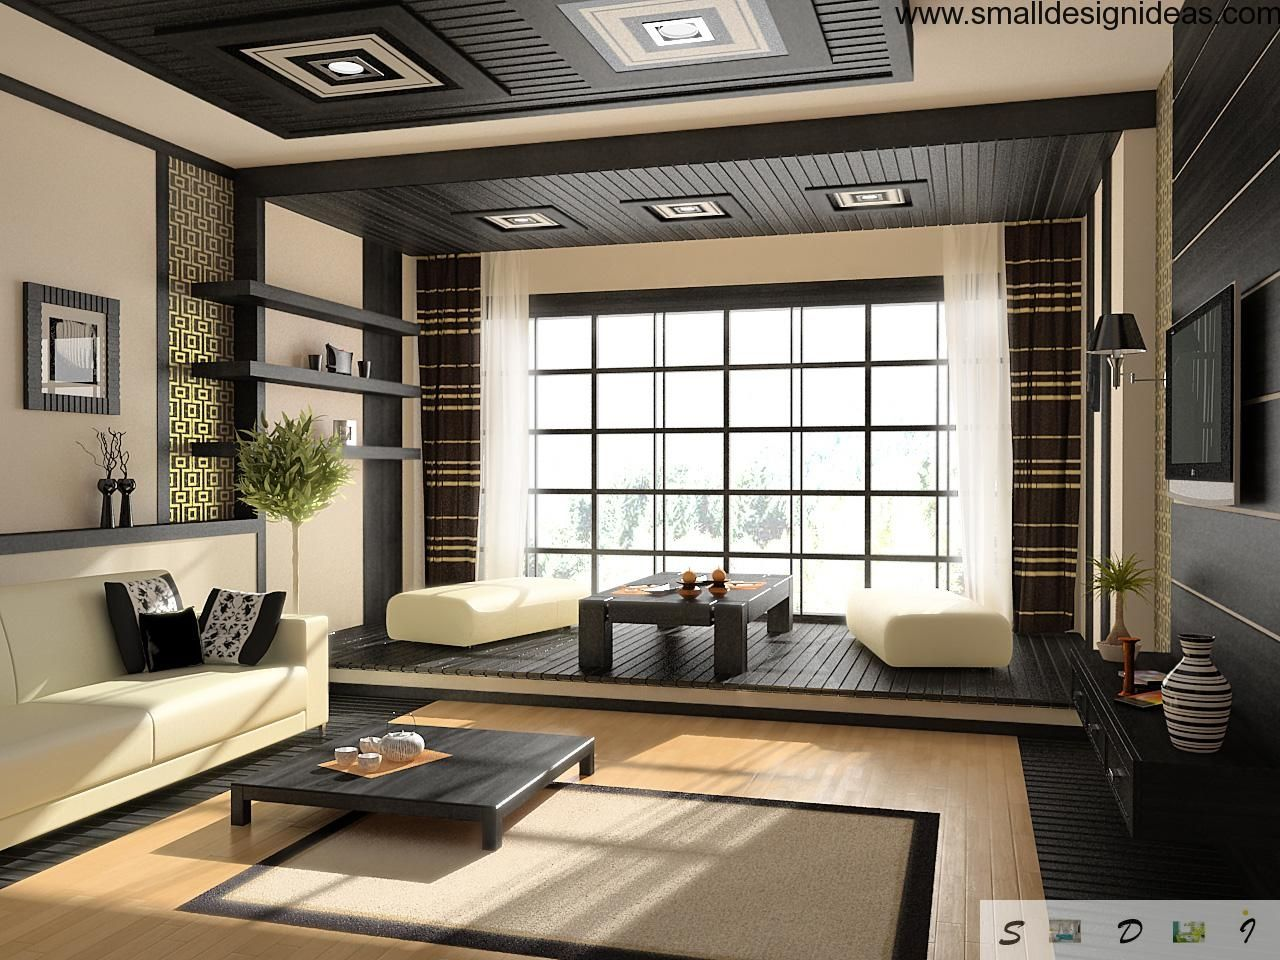 Interior Decor 10 things to know before remodeling your interior into japanese